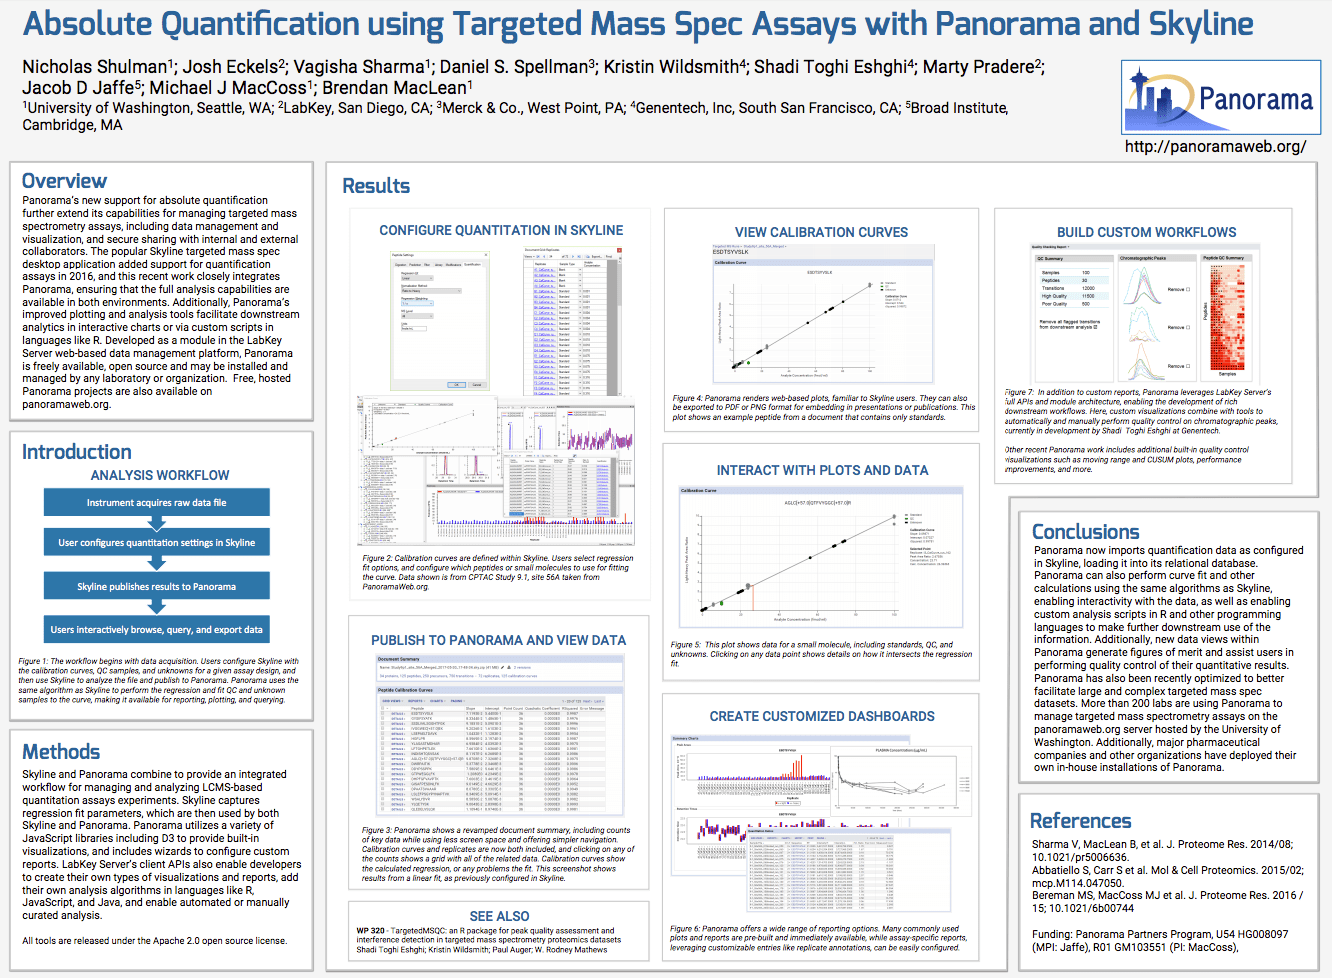 Absolute quantification using targeted mass spec assays with Panorama and Skyline